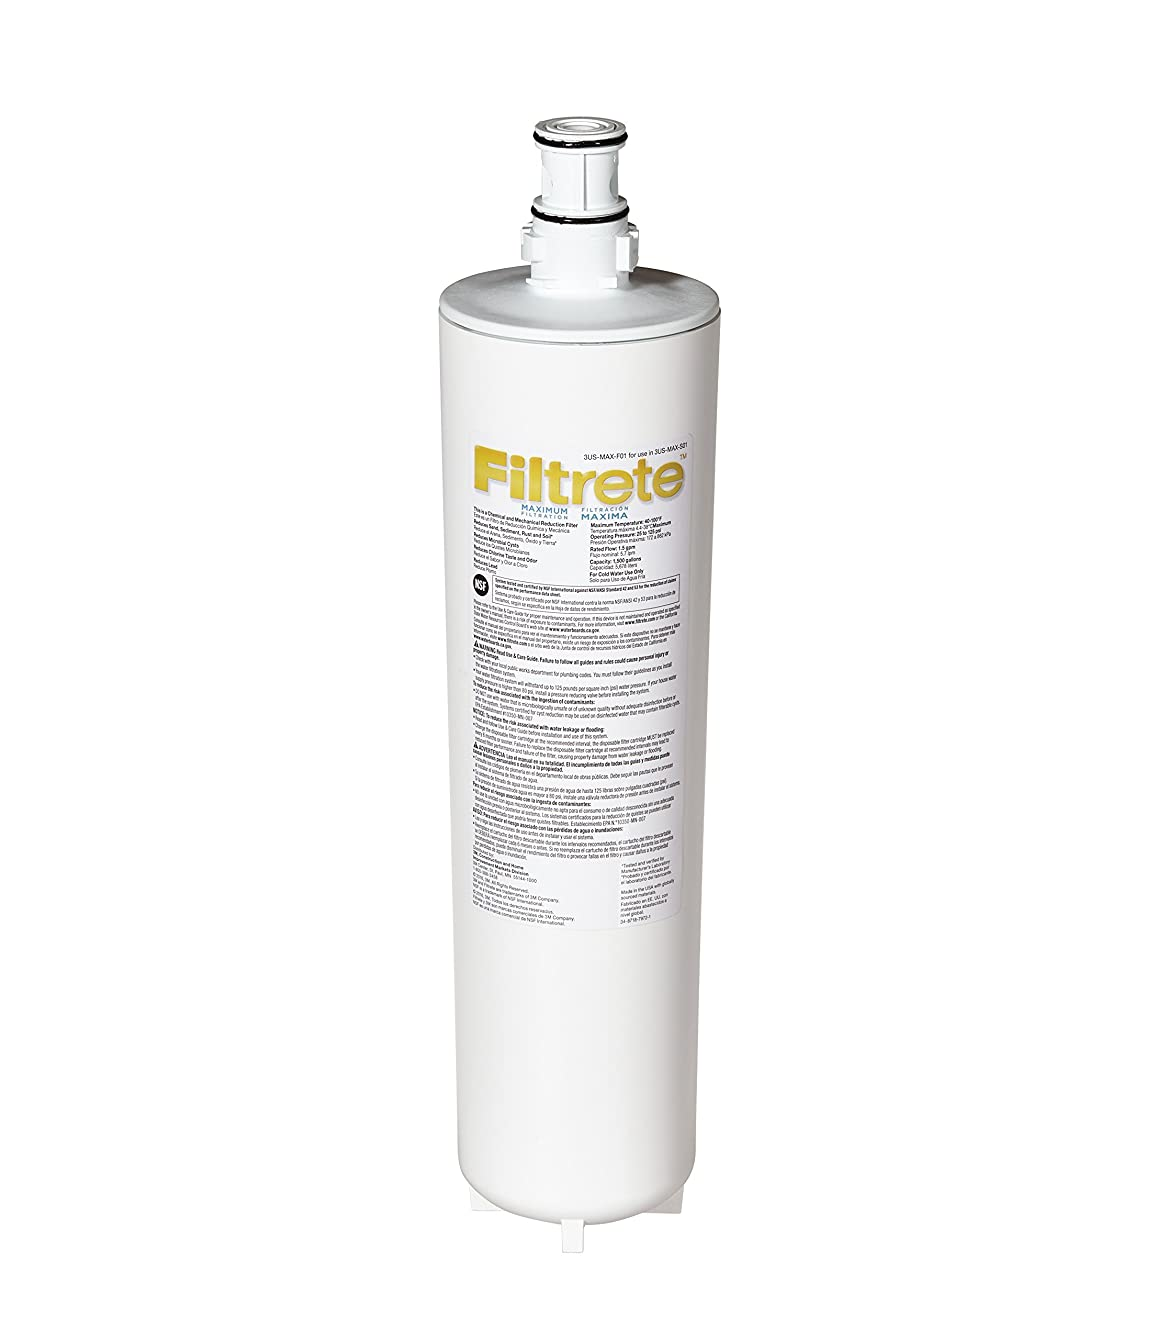 Filtrete Maximum Under Sink Water Filtration Filter, Reduces 99% Lead + Much More (3US-MAX-F01)